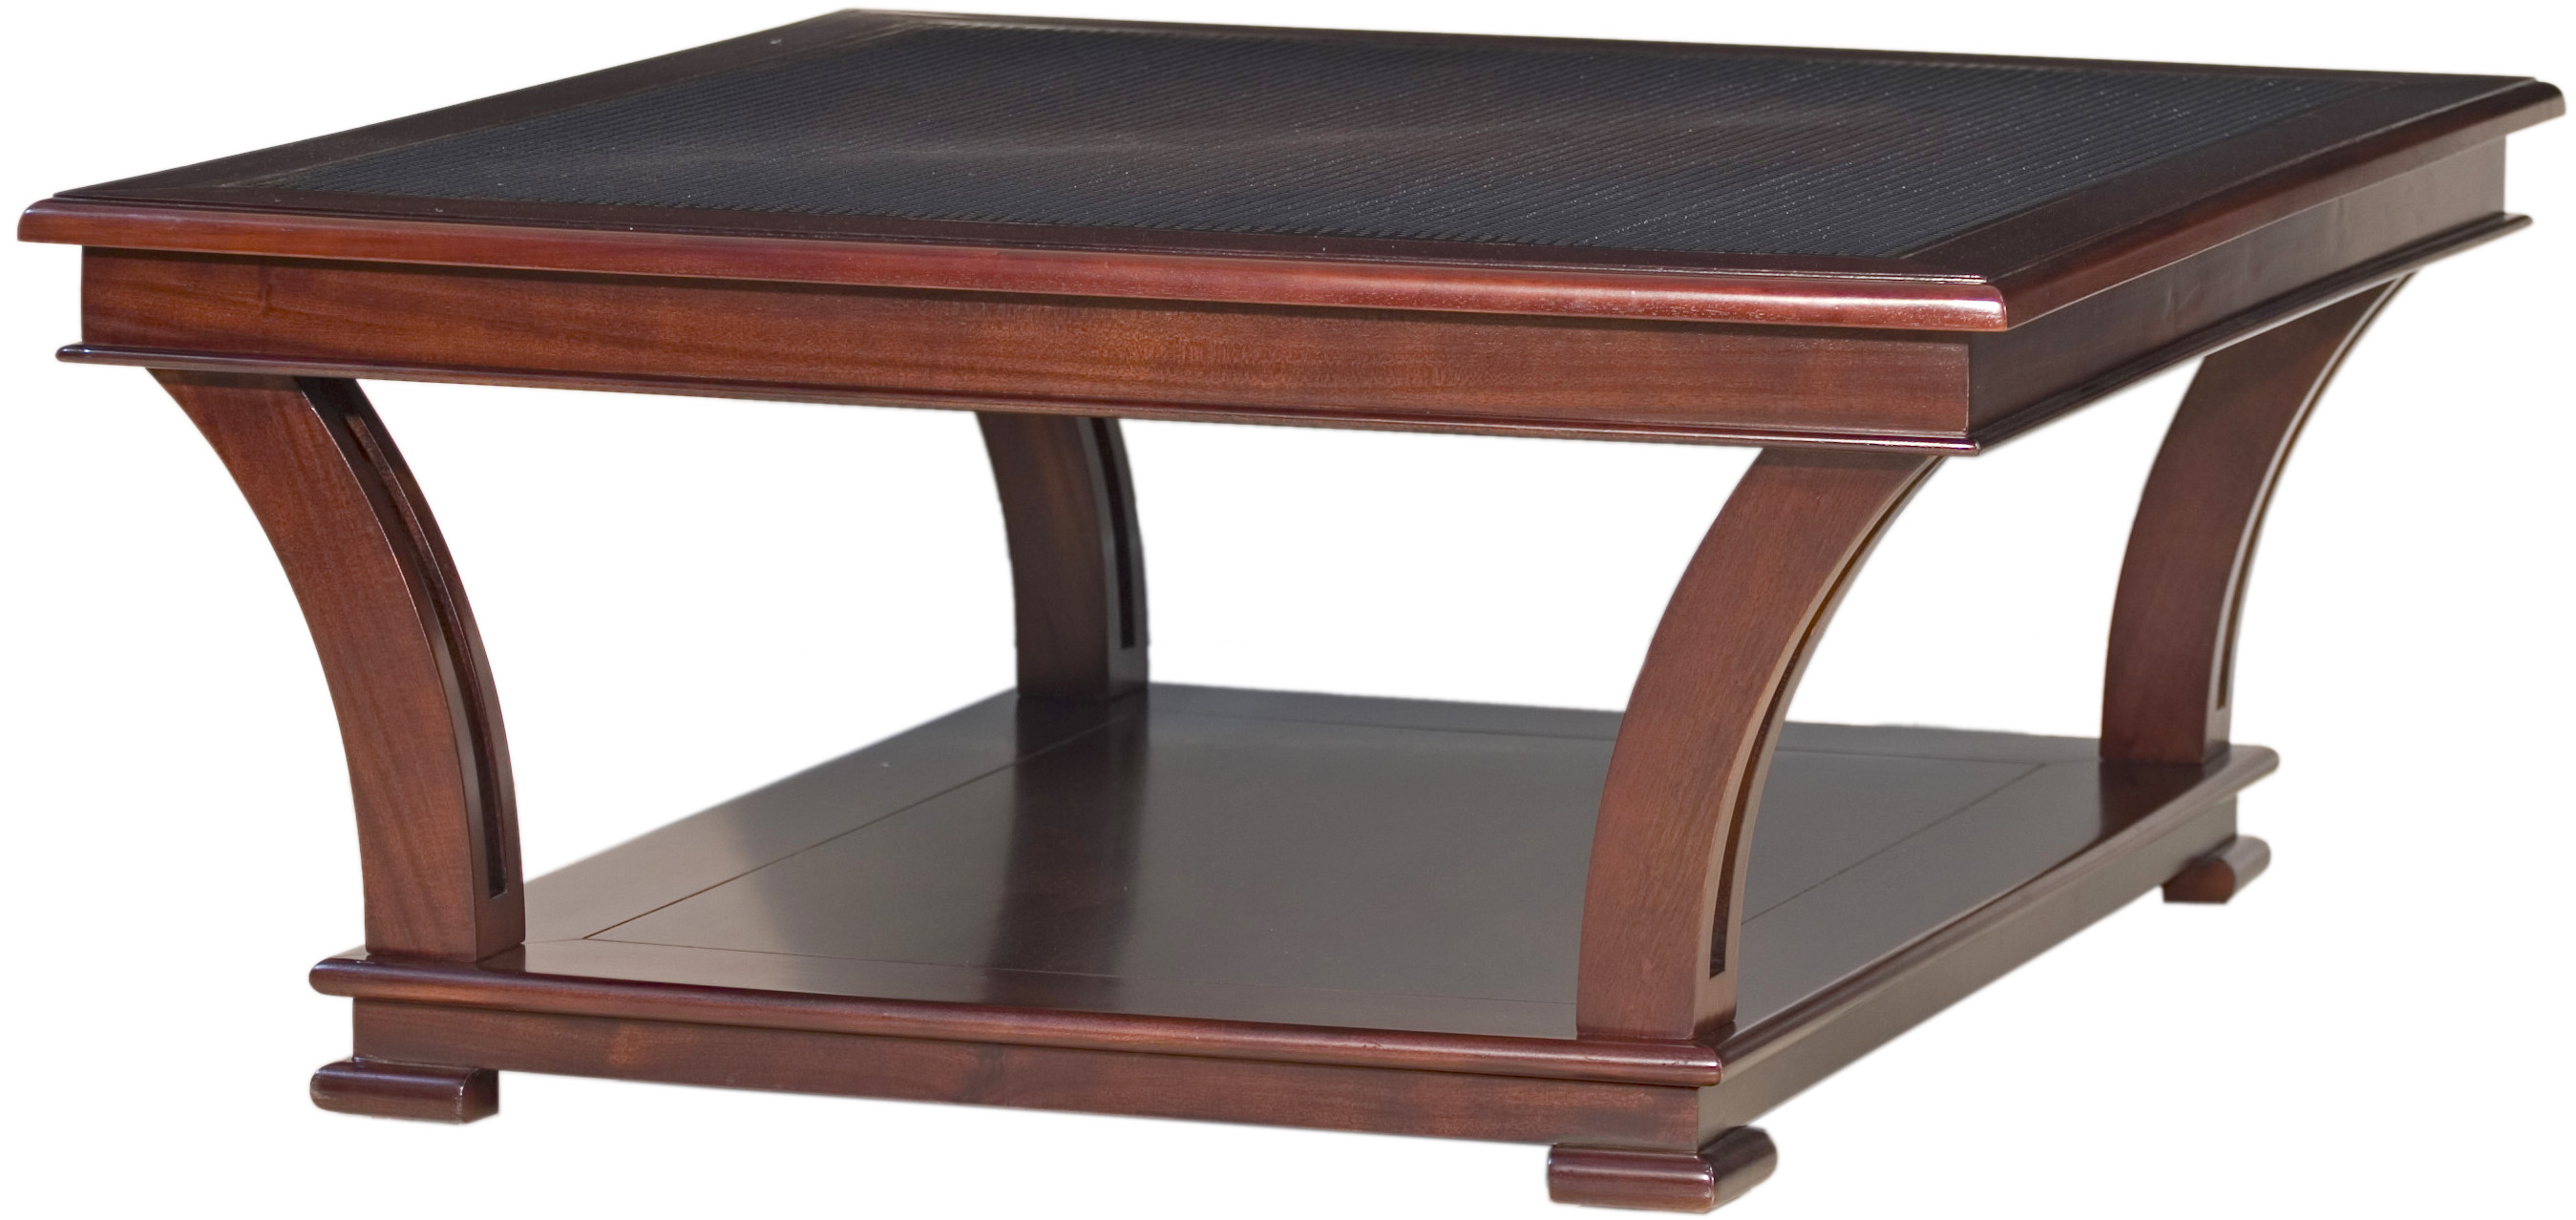 Topolansky Set 3 Coffee Table Marble Top